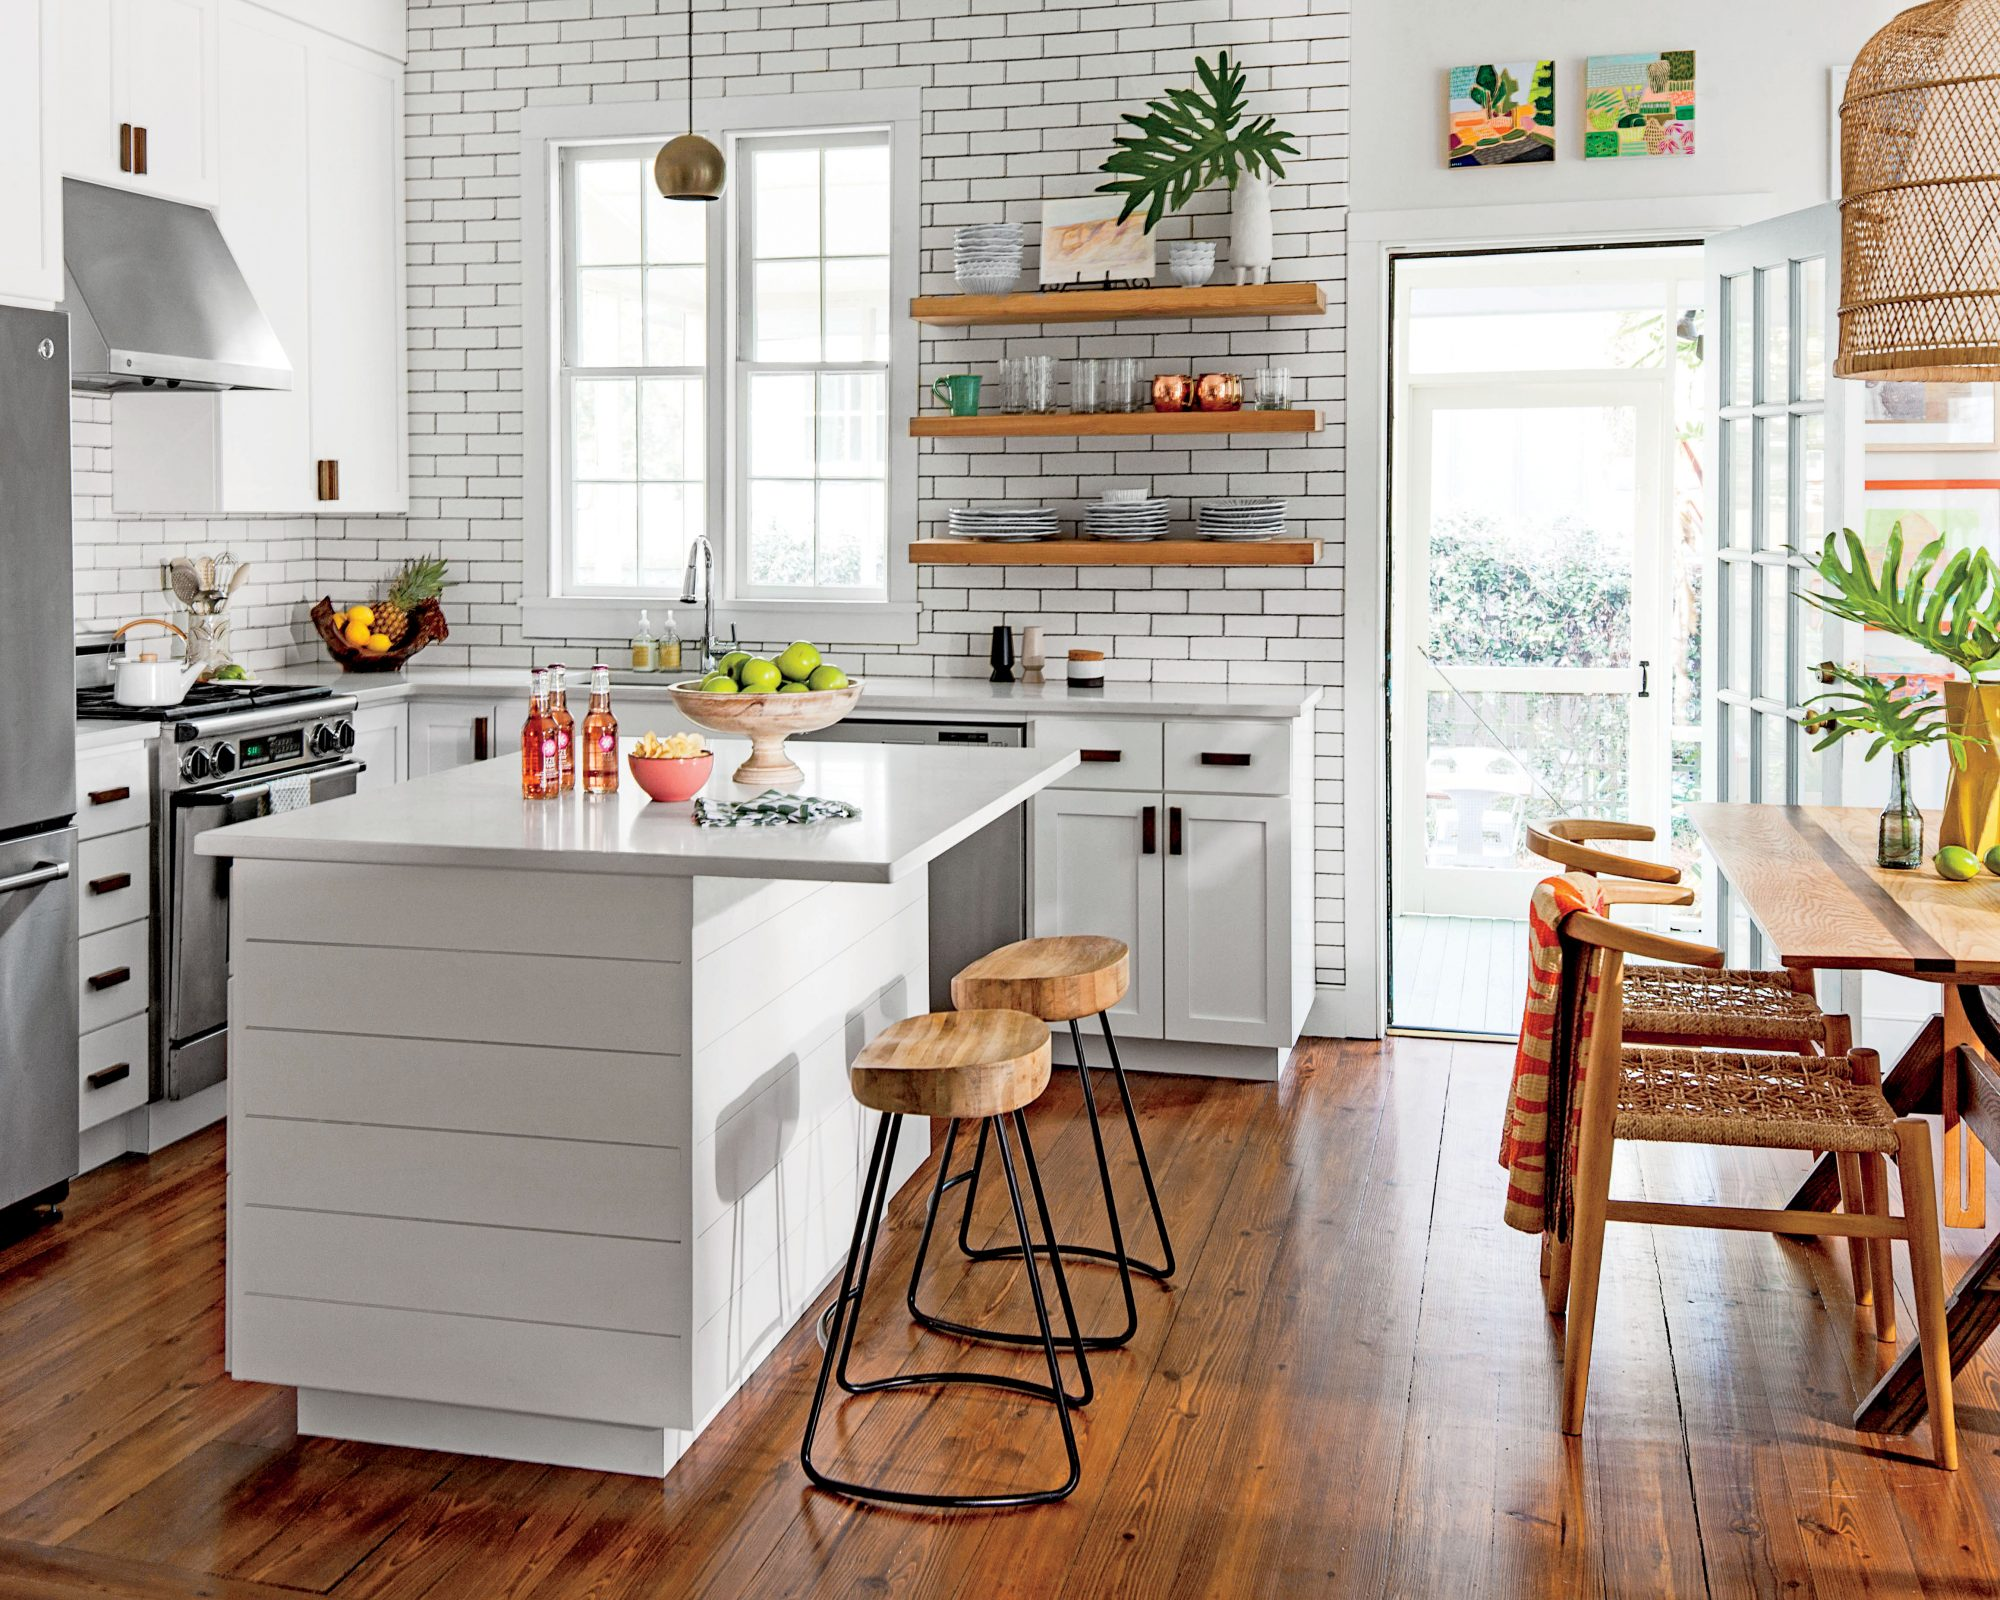 Tiny Kitchen Island with Shiplap Siding